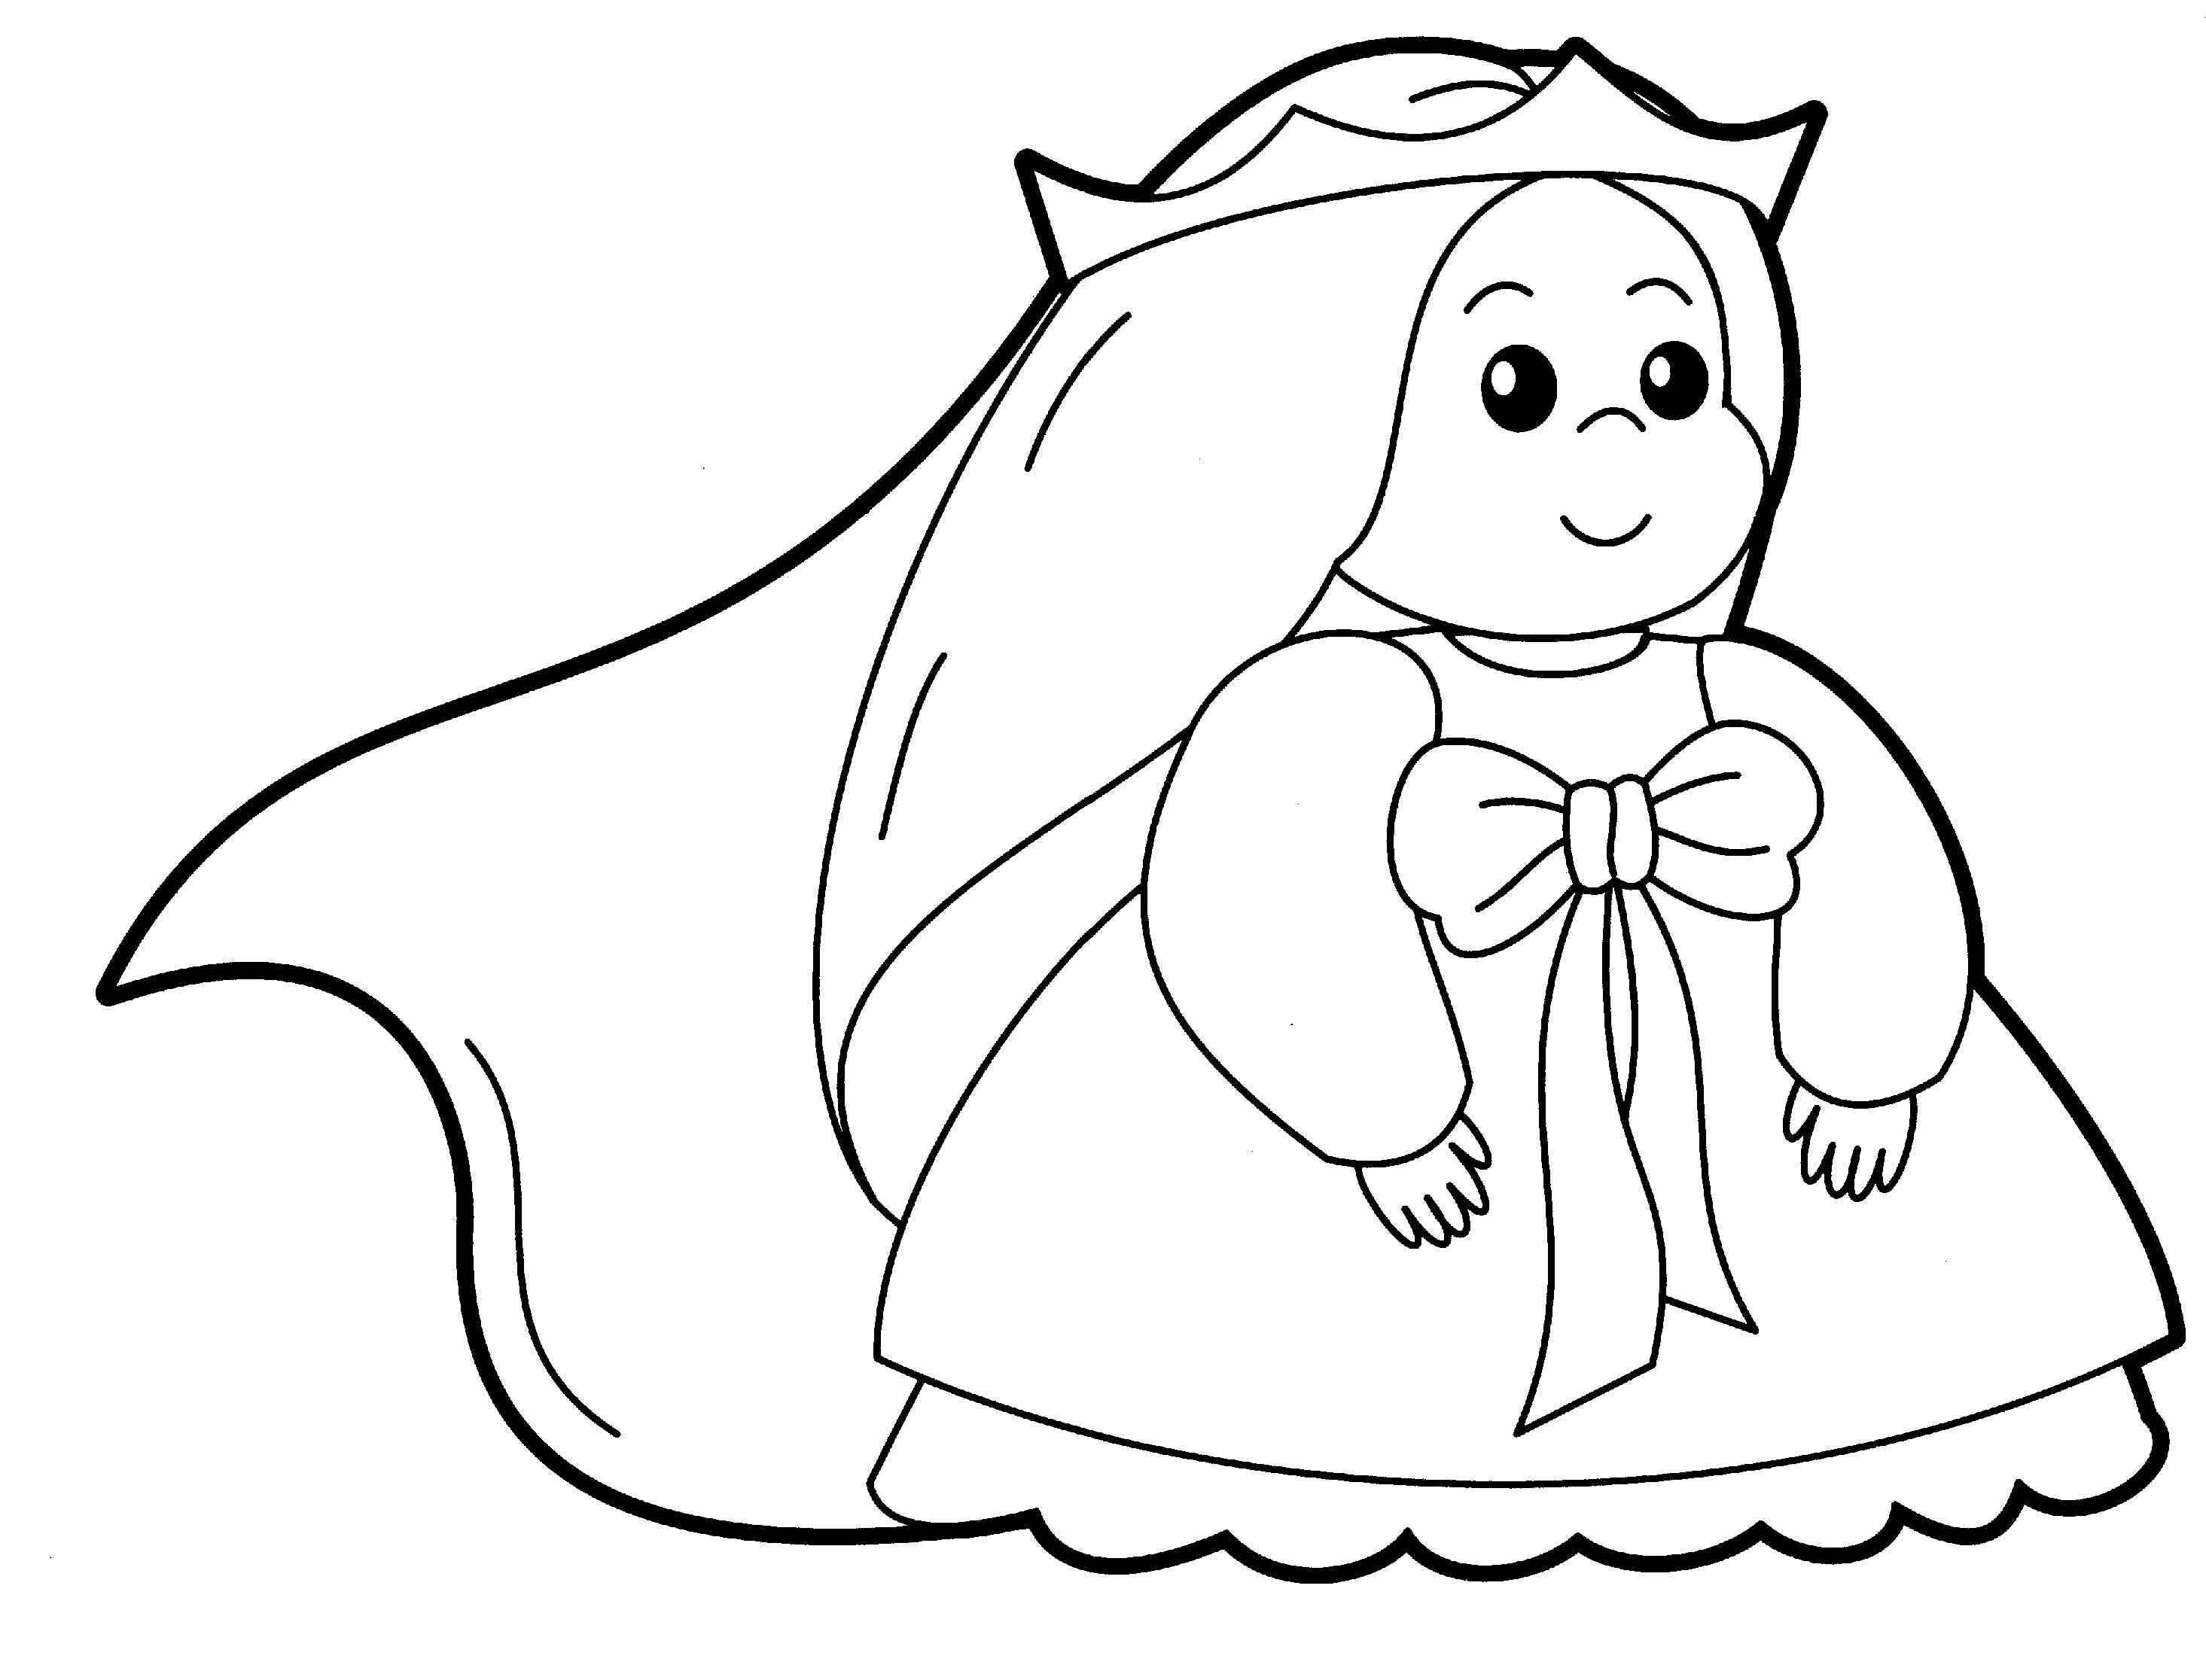 People Coloring Pages Free - Coloring Home